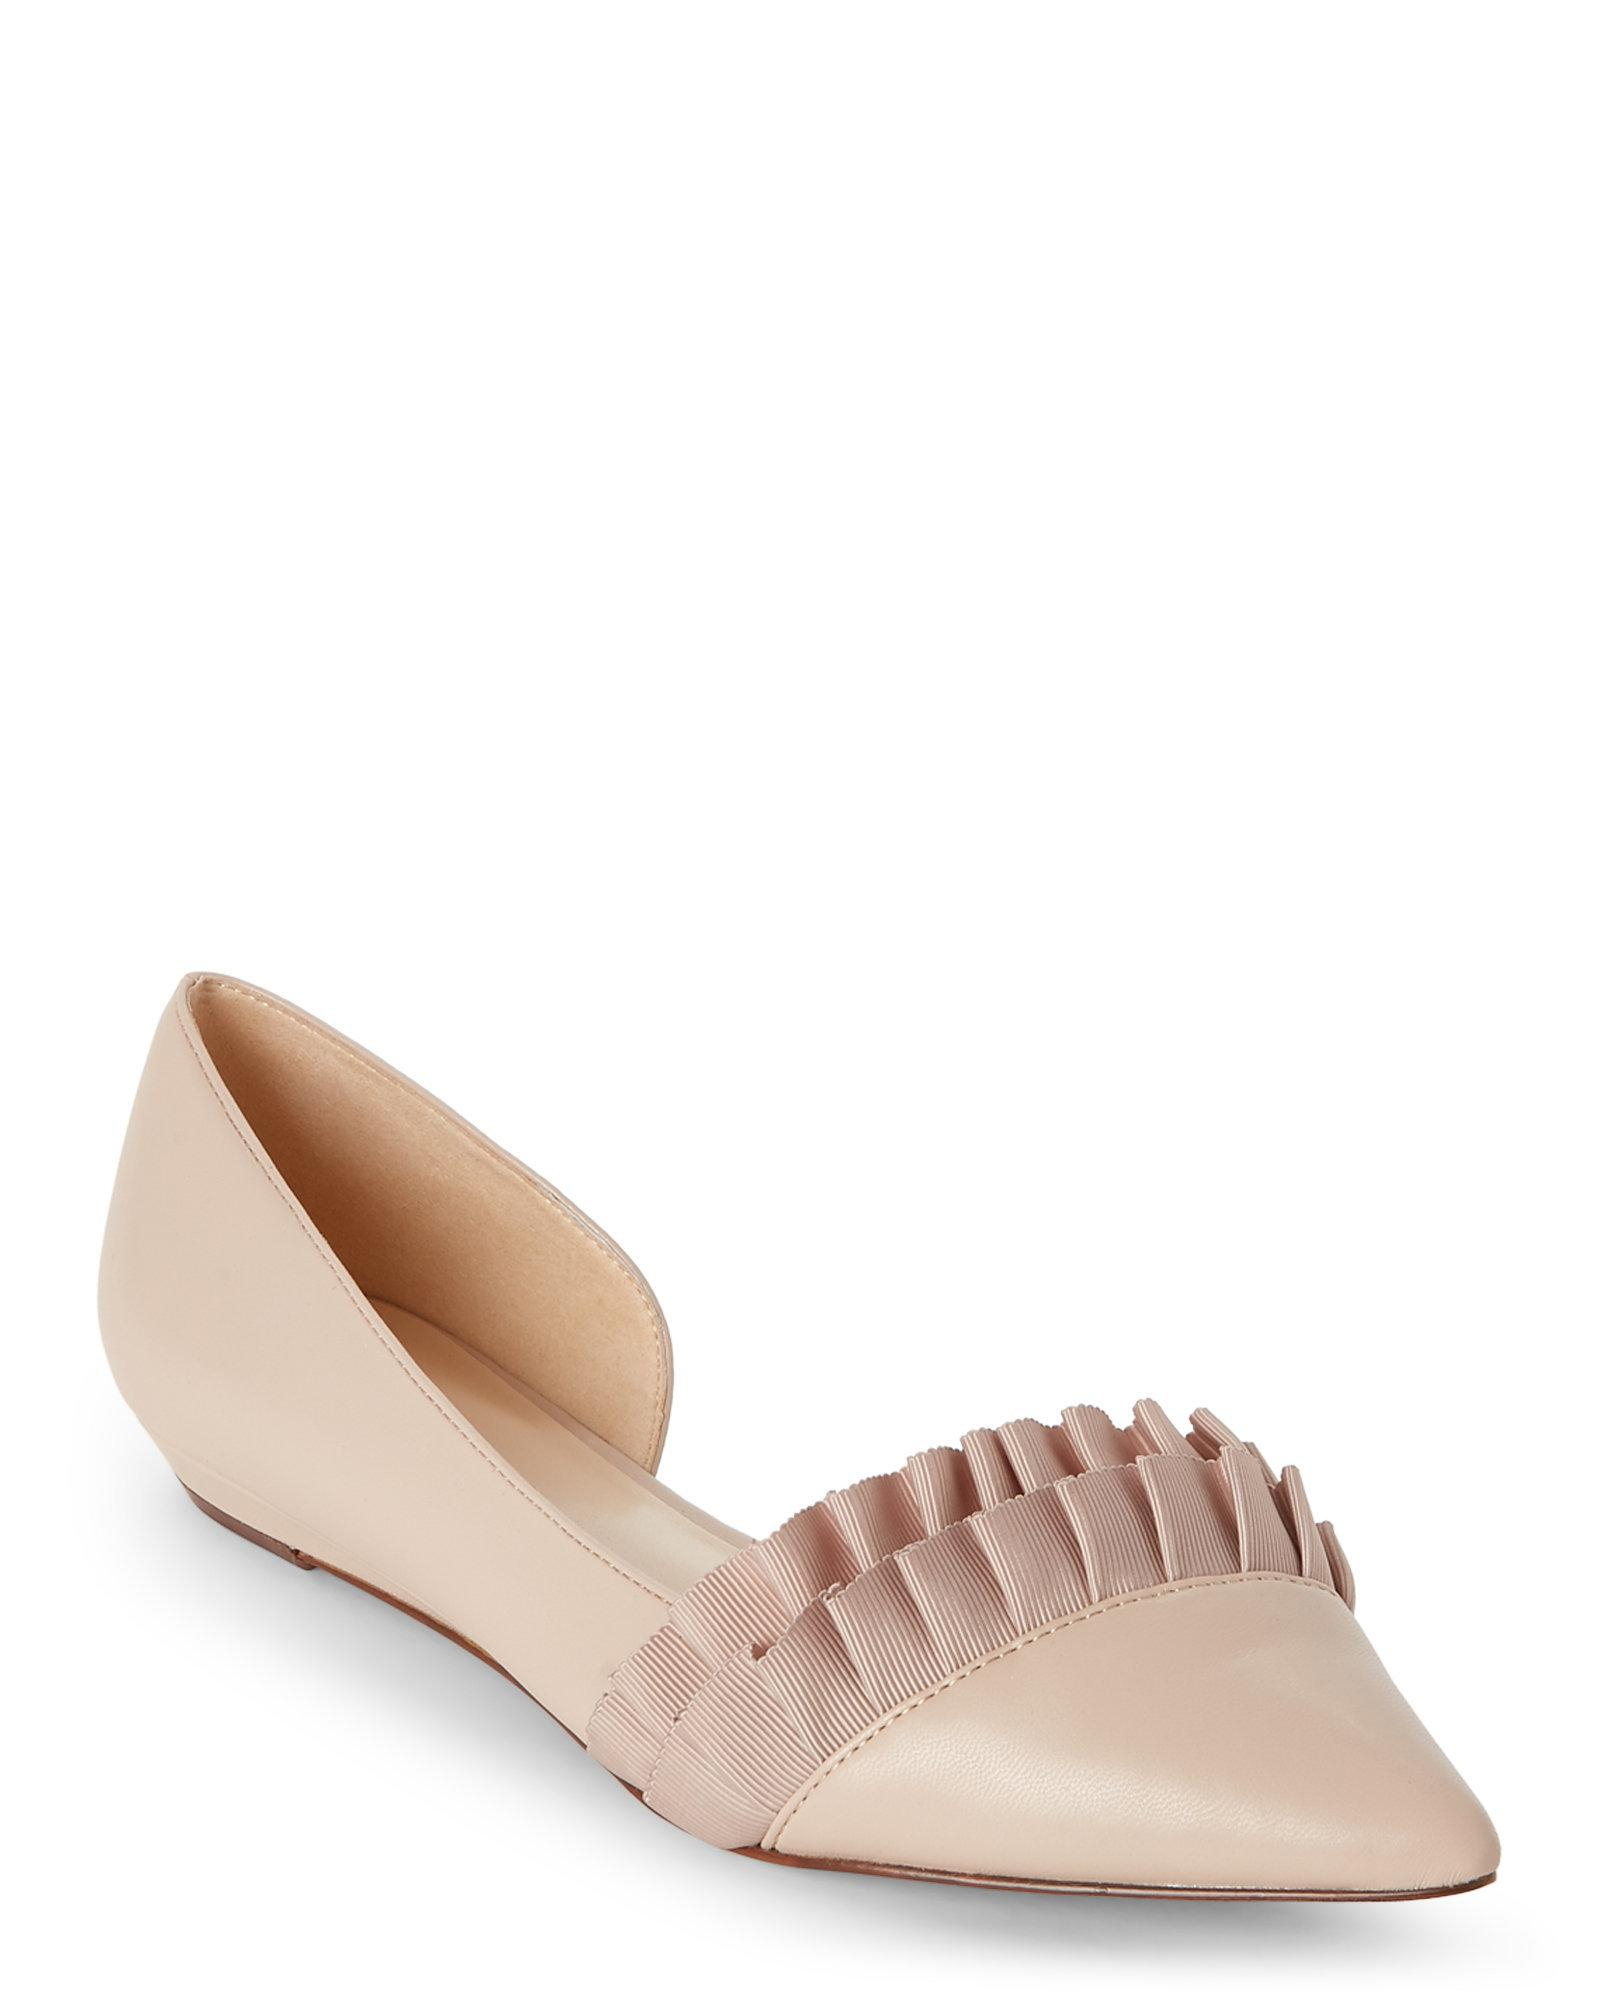 d00b55543311 Lyst - Nine West Natural Saby Ruffled Pointed Toe D Orsay Flats in ...